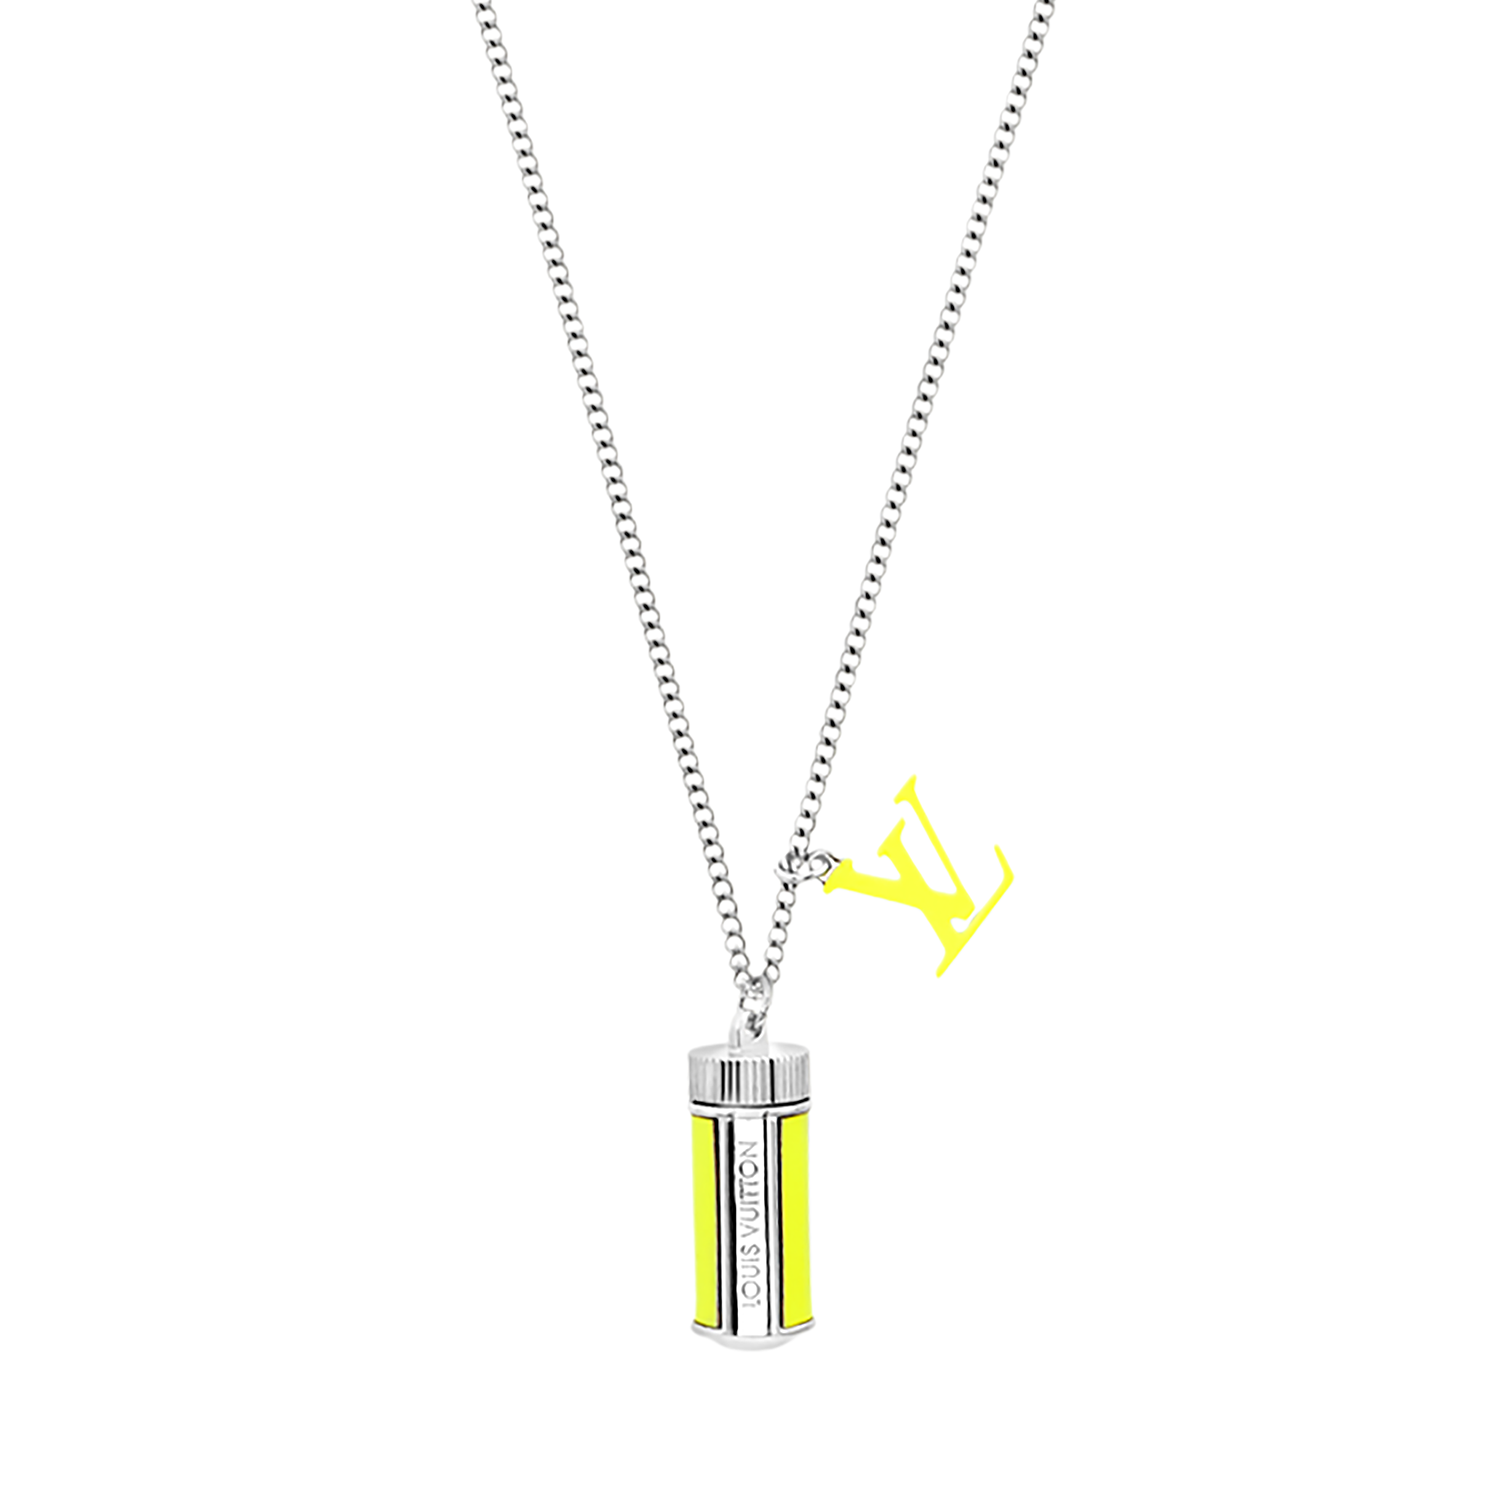 LV FLUO NECKLACE - €350 $515MP2143JAUNE